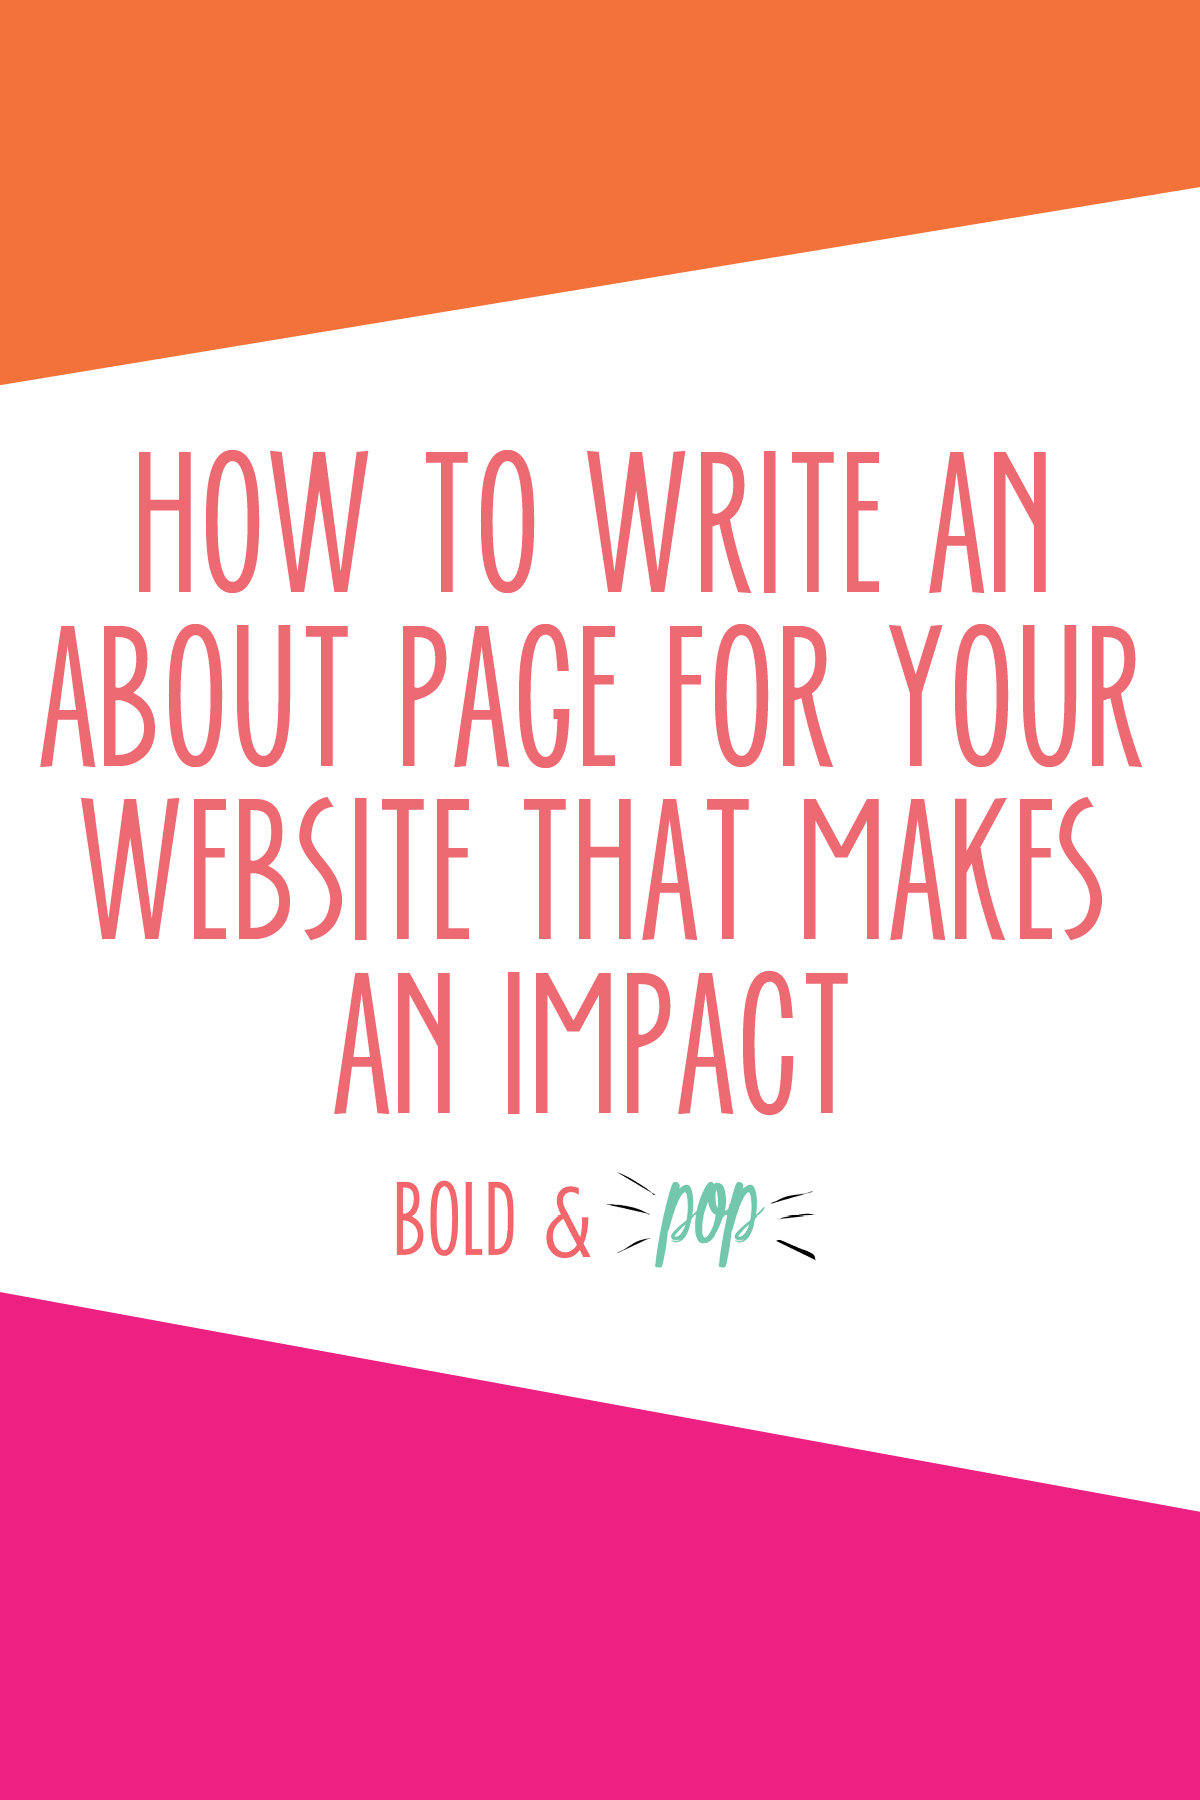 Bold & Pop : How to Write an About Page for your Website that Makes an Impact